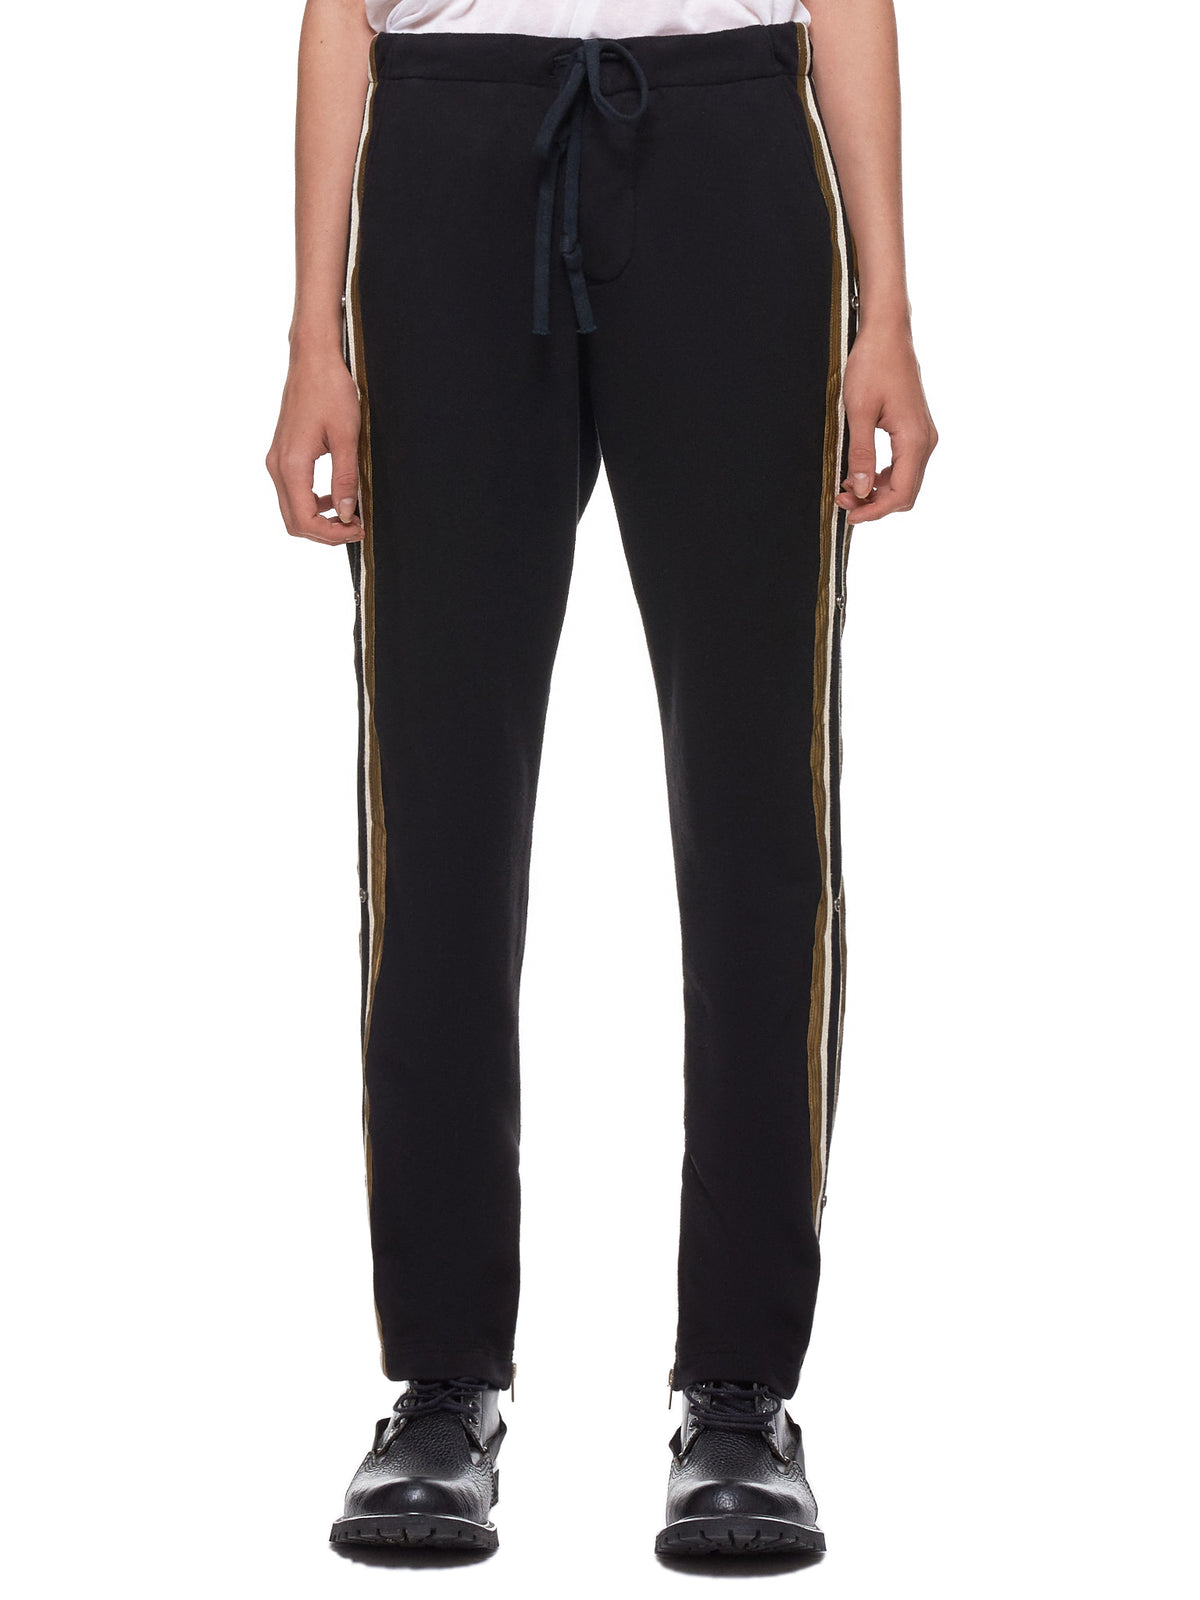 Black Royal Lounge Trousers (W228-BLACK)